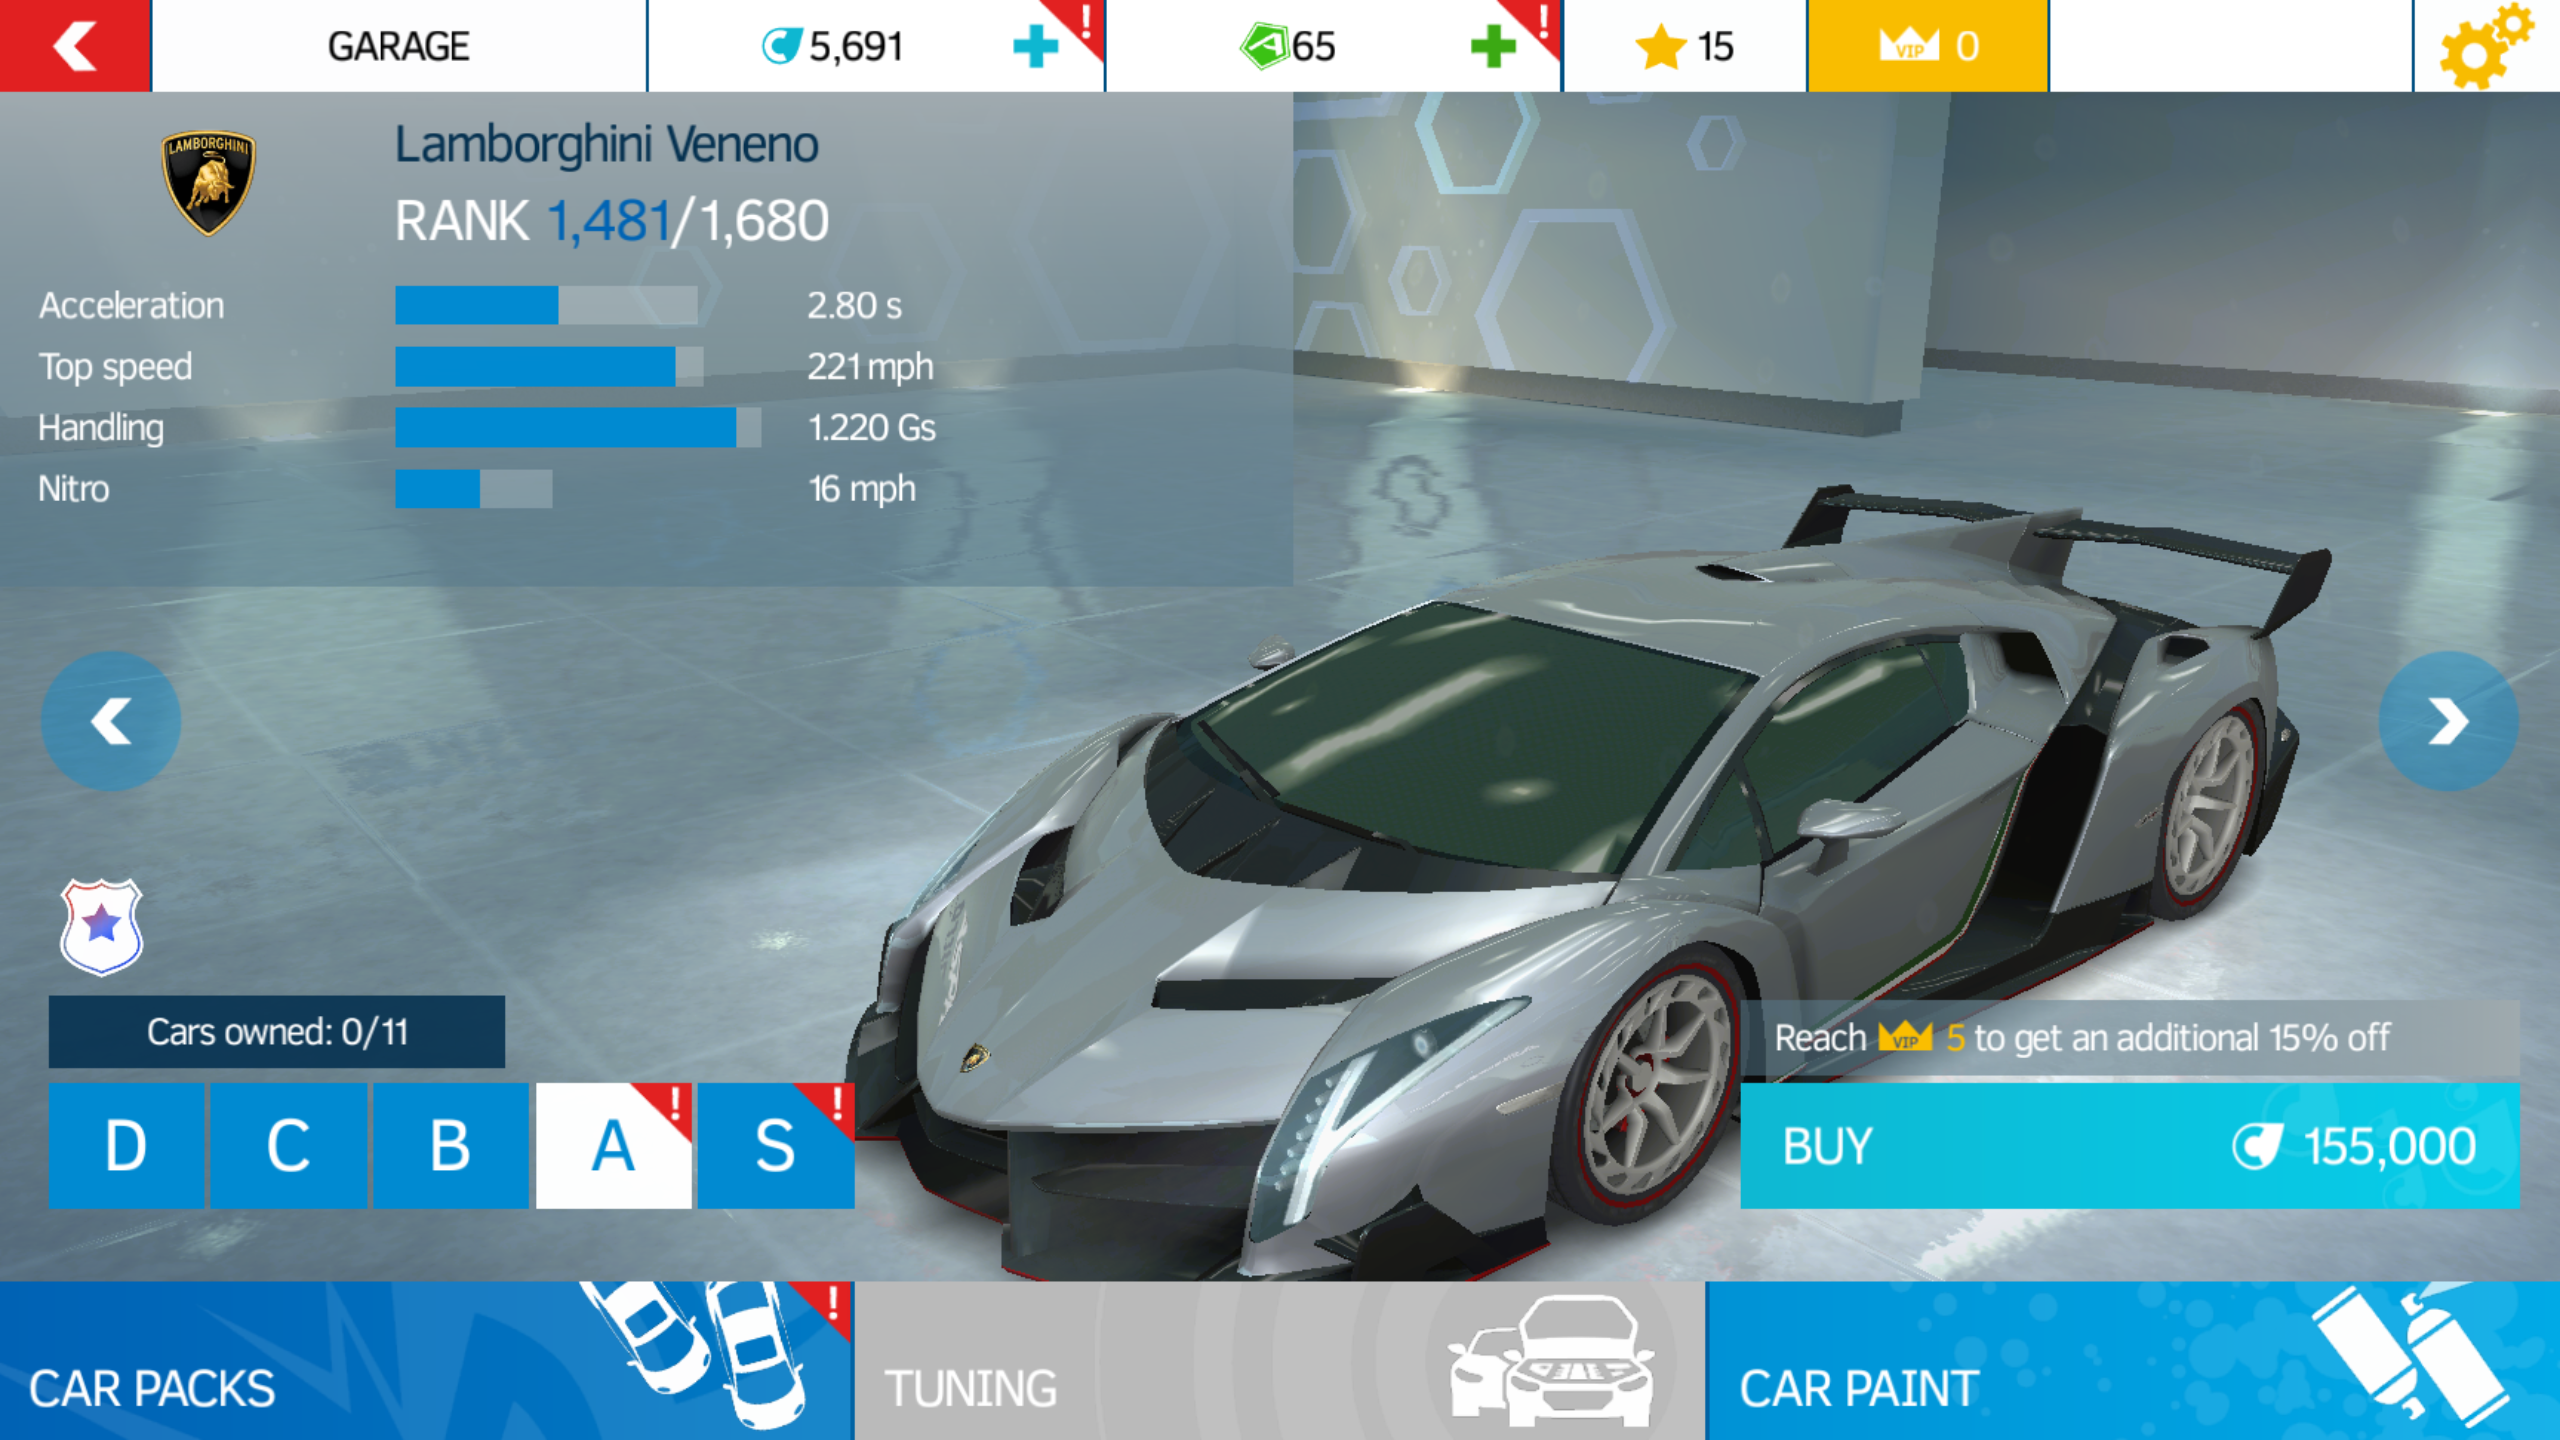 the lamborghini veneno is available in asphalt nitro from the get go as a class a car it otherwise behaves exactly identically to its asphalt 8 airborne